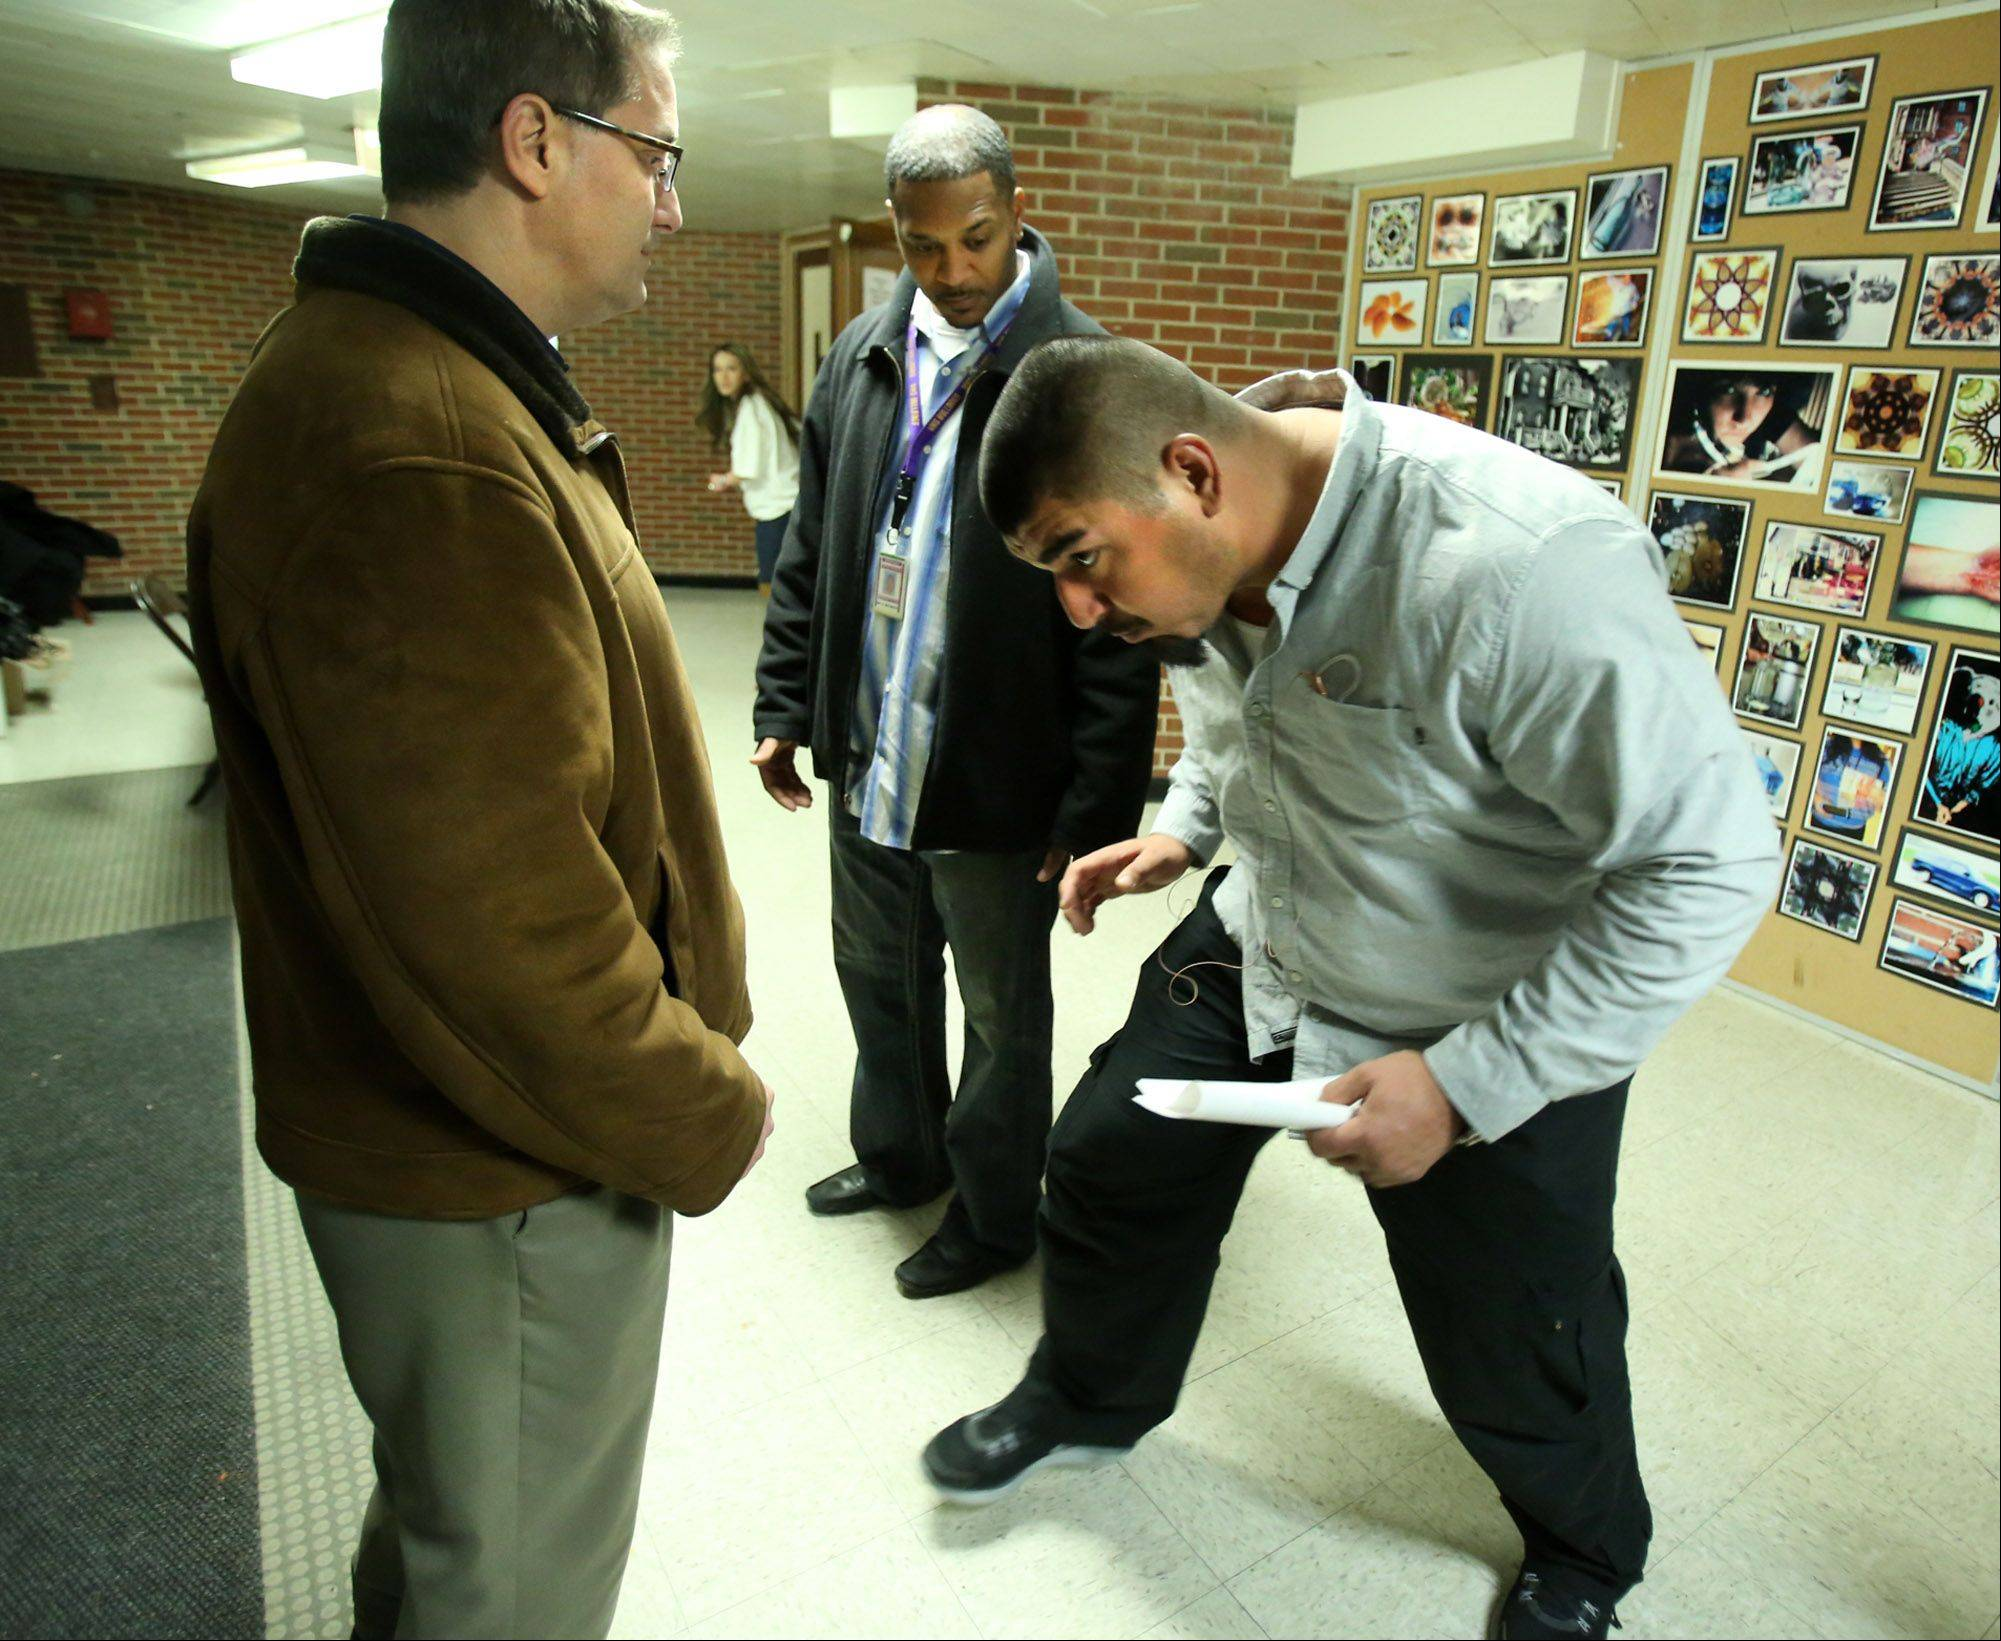 Bears center Roberto Garza, right, reviews offensive plays with Waukegan High School varsity linebacker coach Chris Lacivita, left, and head coach Nick Browder in the school auditorium lobby Friday before Garza took the stage for fundraiser.